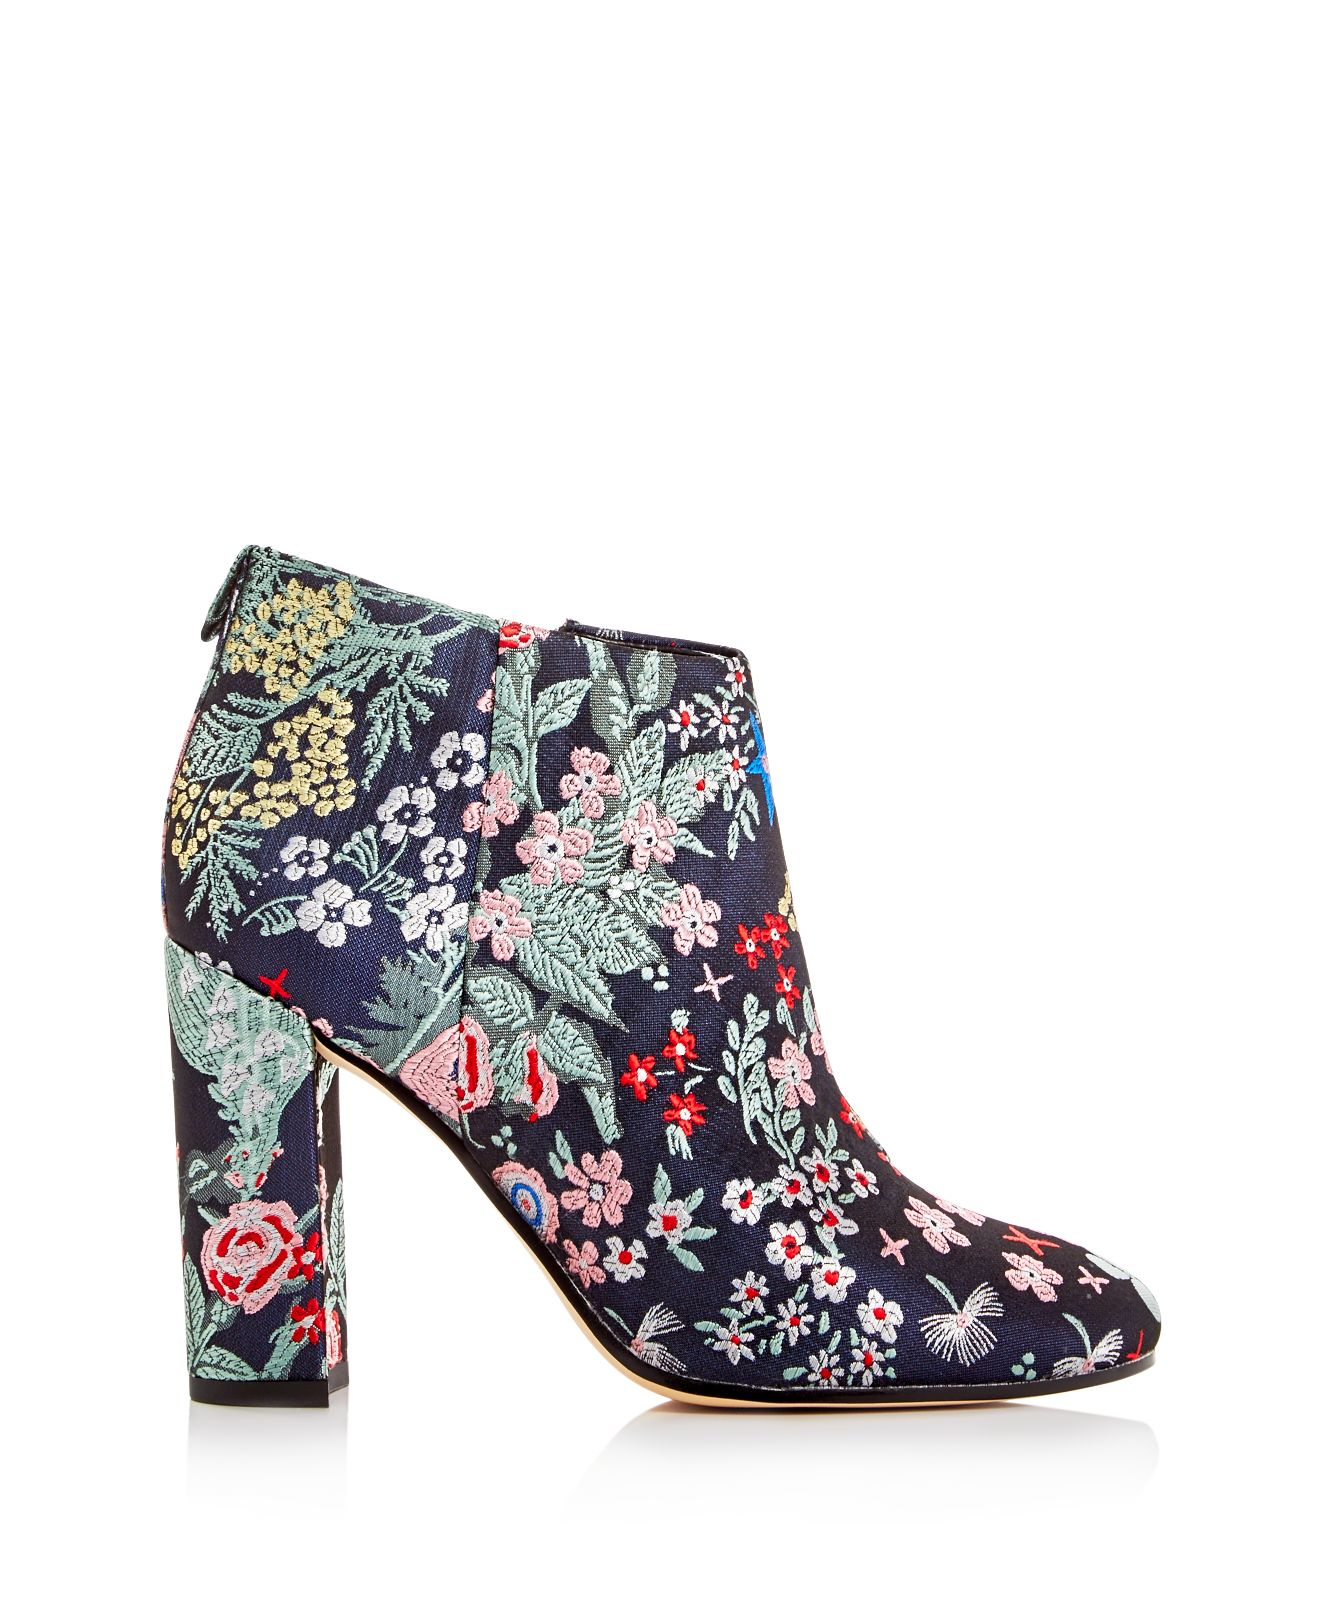 Sam Edelman Synthetic Campbell Floral Jacquard Block Heel Booties in Blue